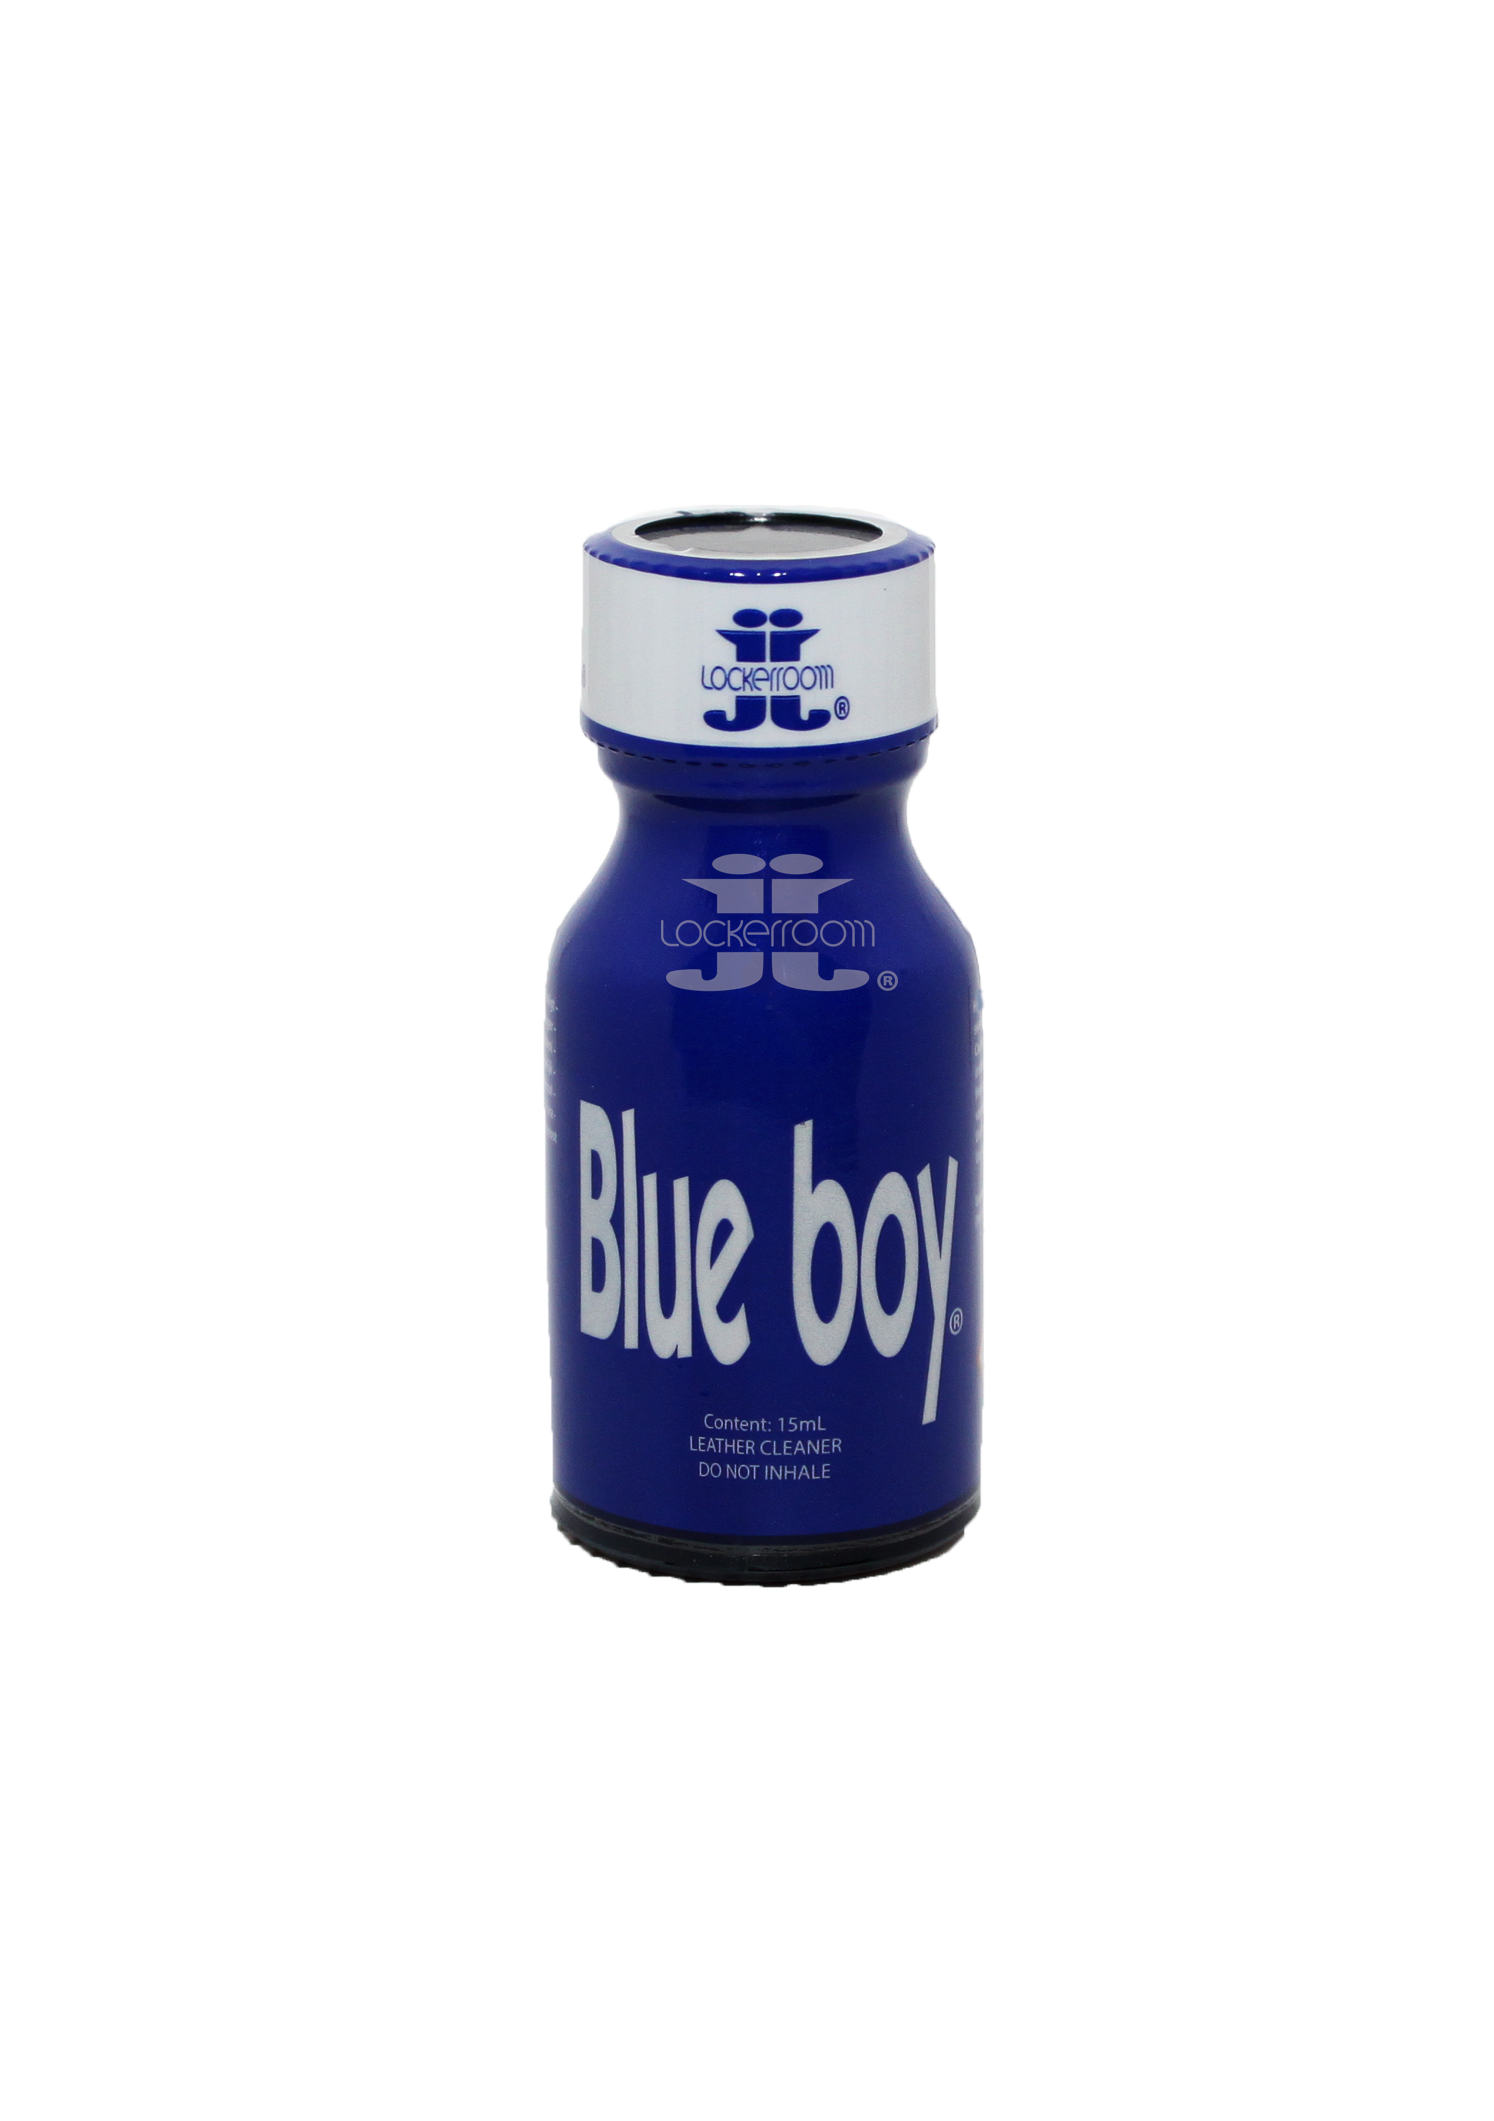 Blue Boy 15mL Bottle